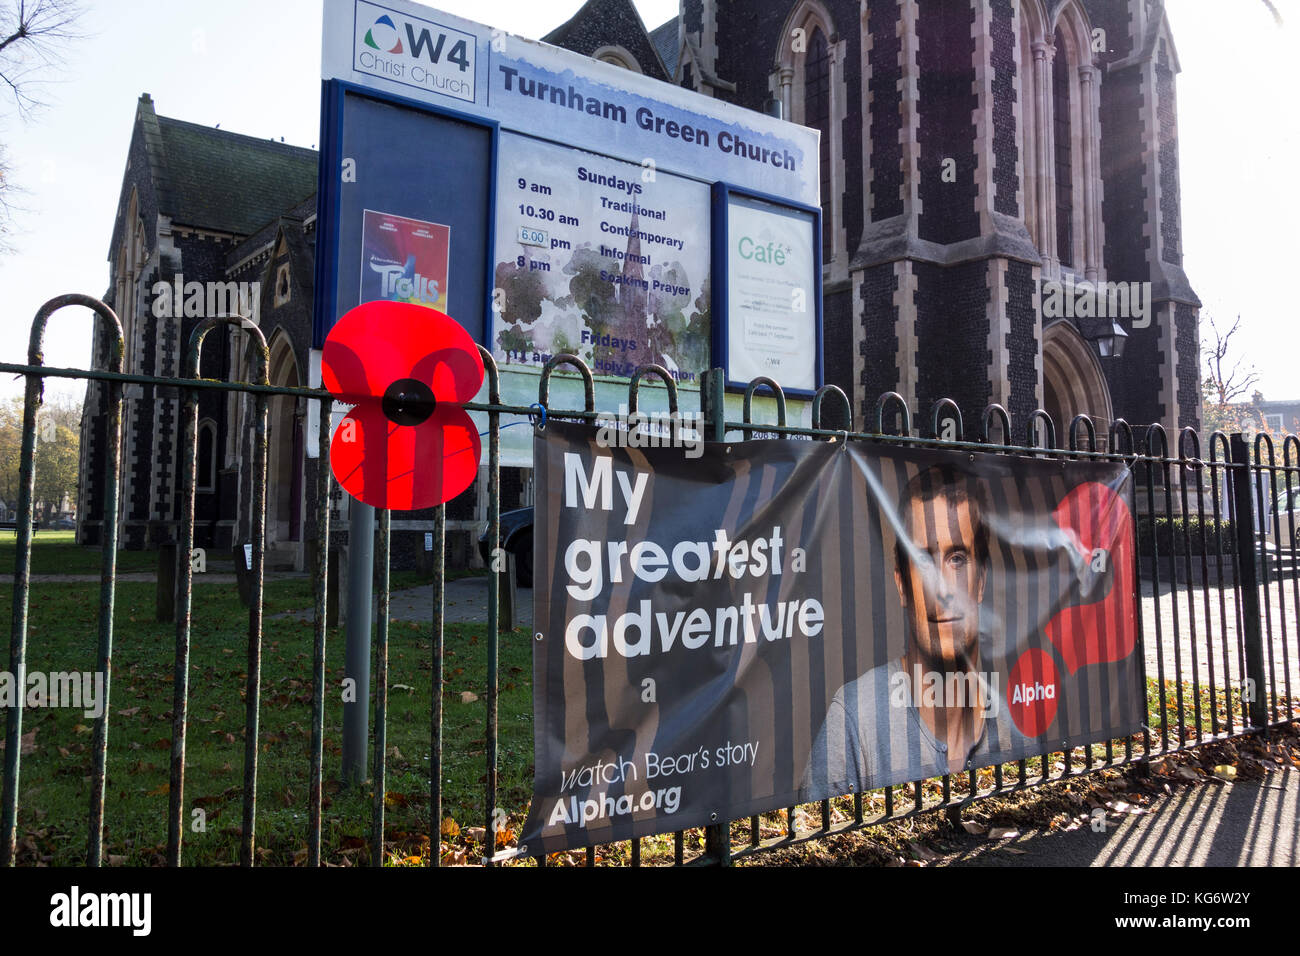 A giant poppy as part of a Remembrance memorial in Chiswick, west London, UK. - Stock Image